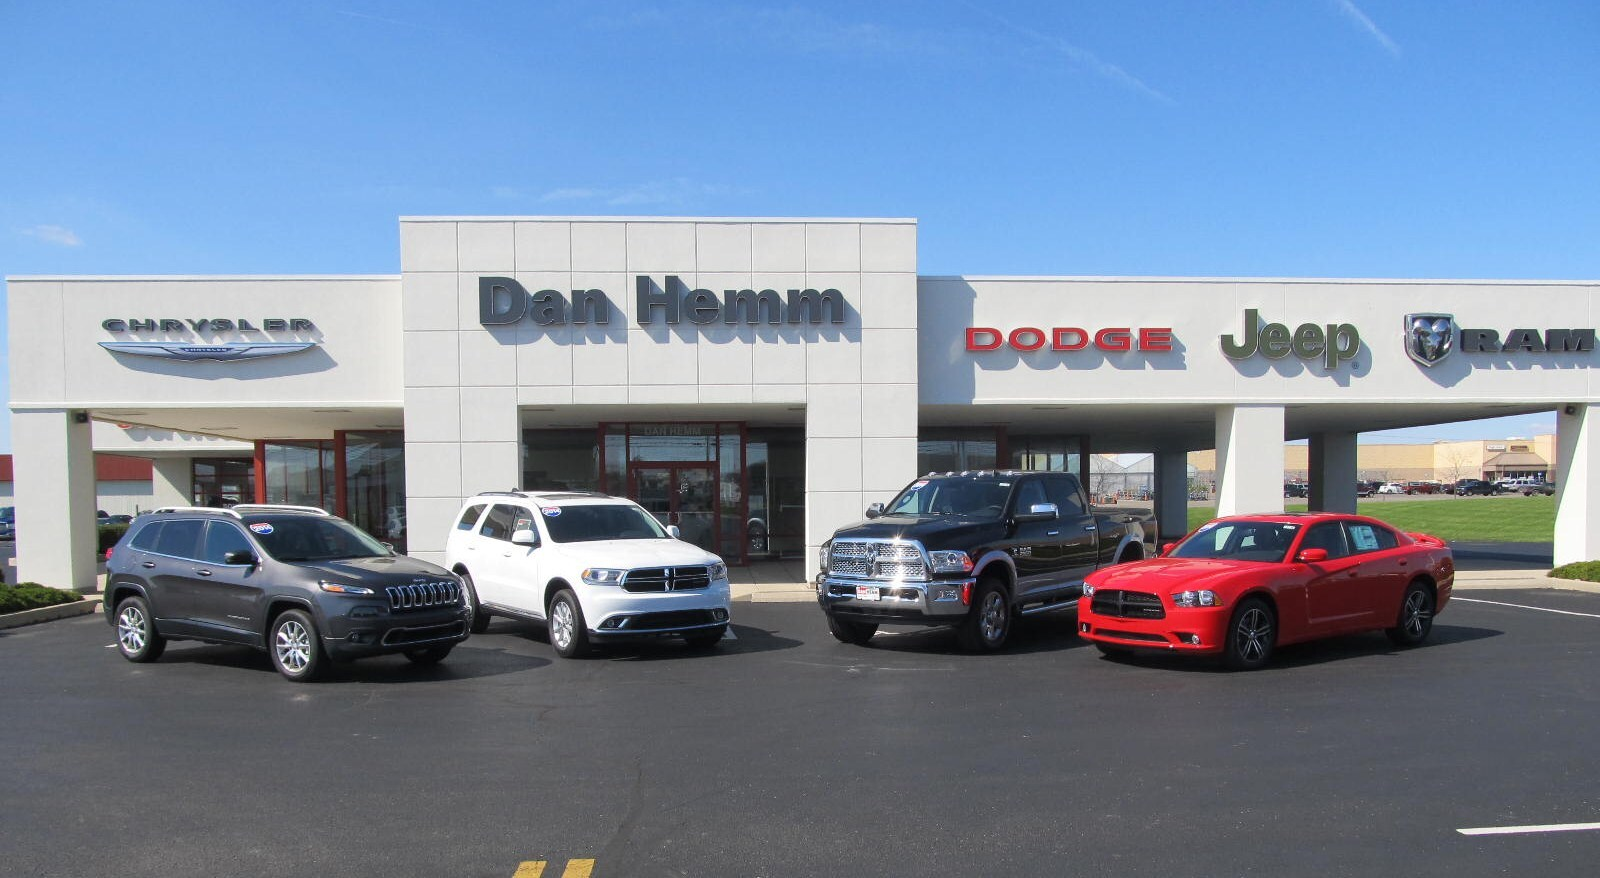 Jeep Dealers Dayton Ohio >> Sidney New Used Car Dealer About Dan Hemm Chrysler Jeep Dodge Ram